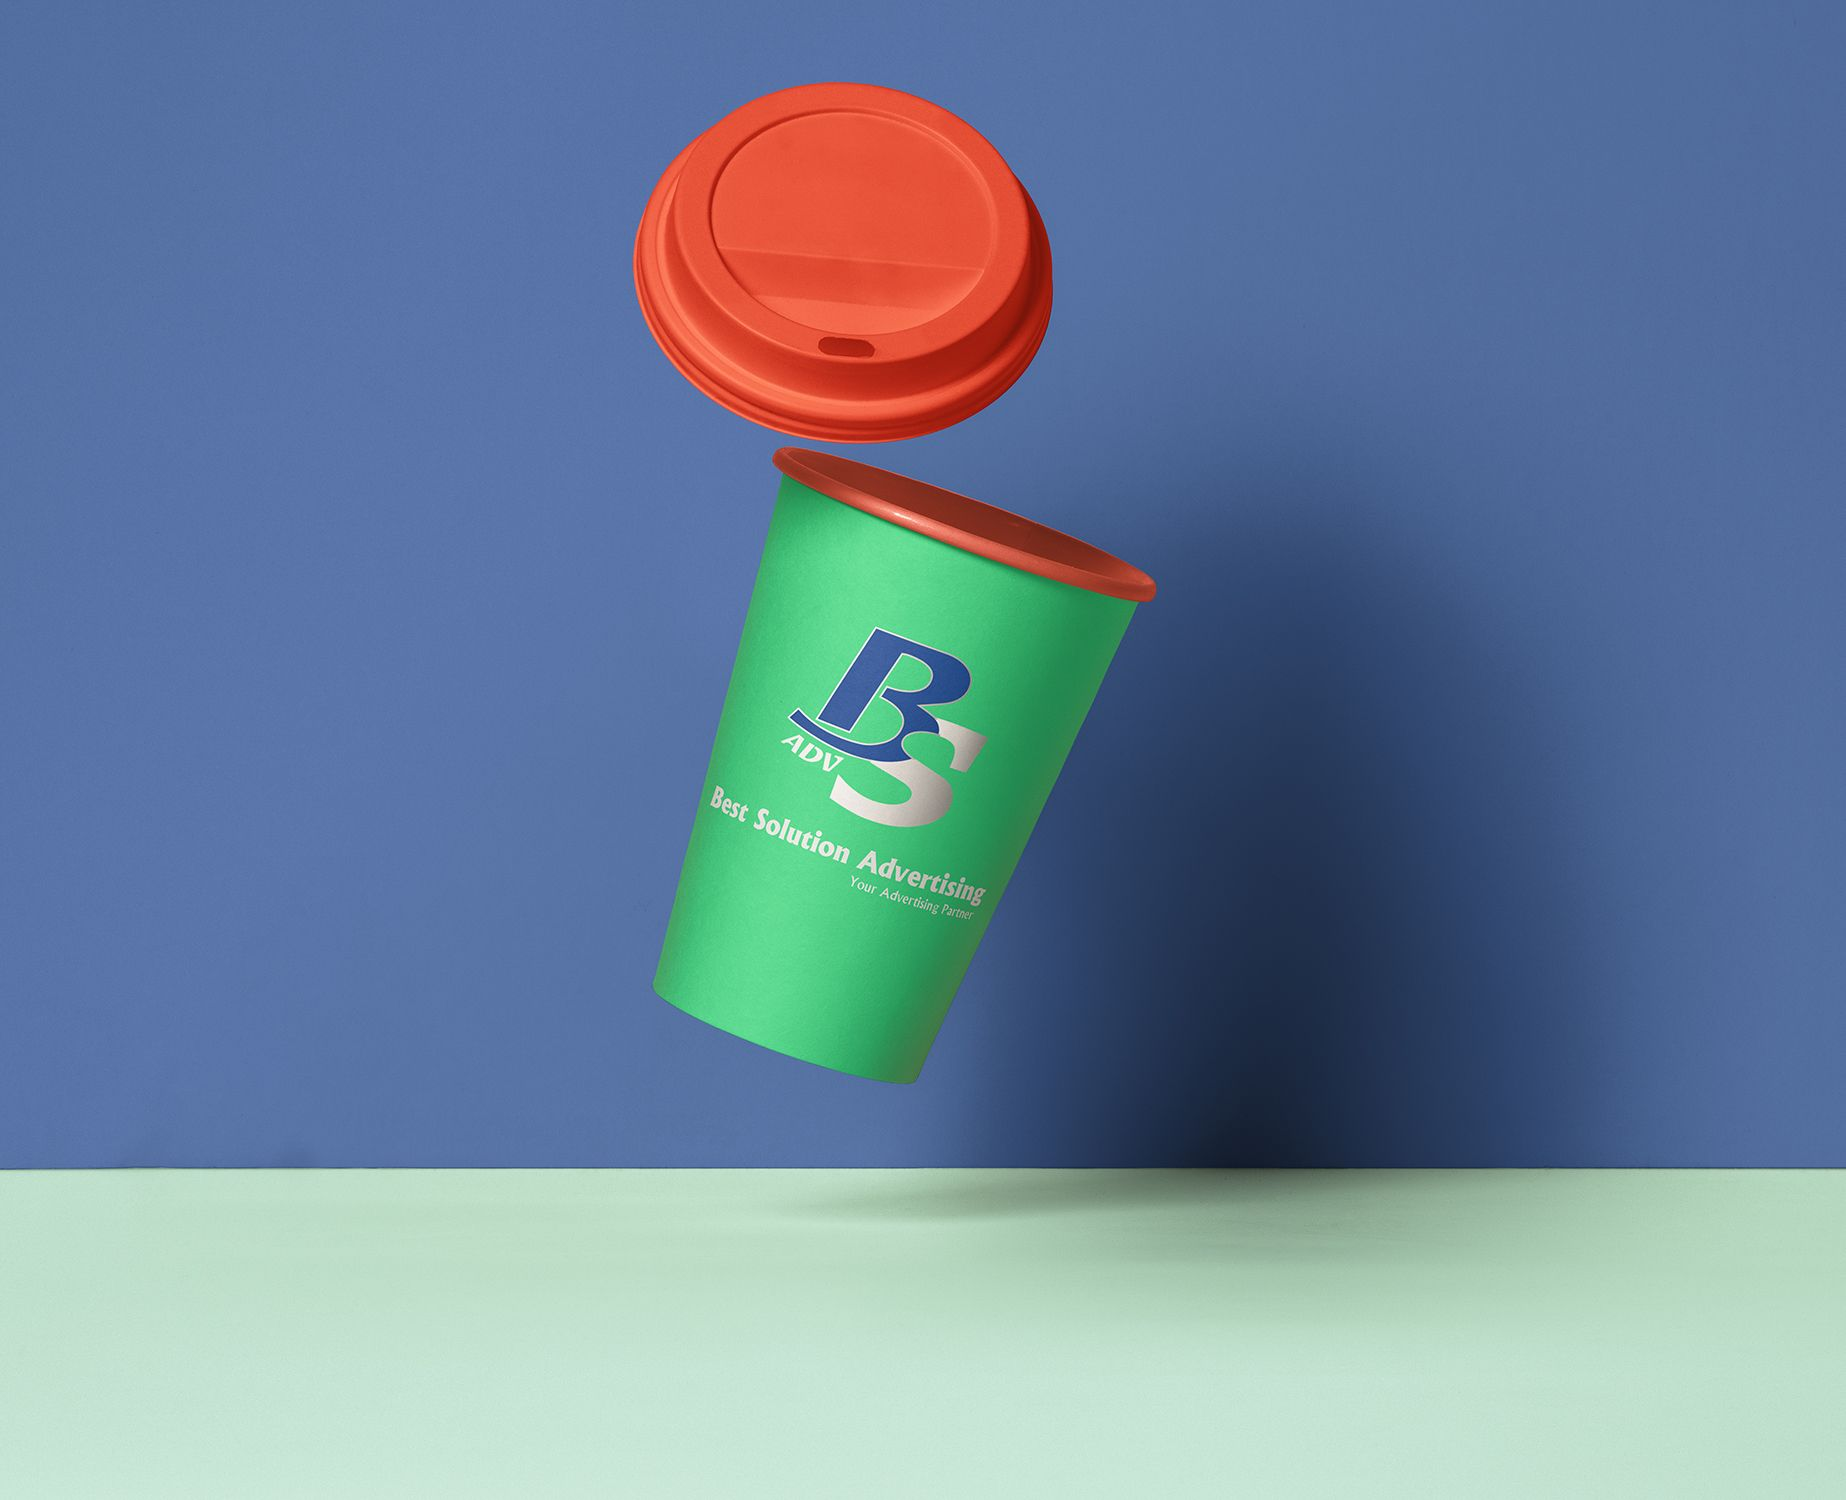 Cup Sticker Design And Printing Services In Jeddah Advertising Services Sticker Design Branding Services